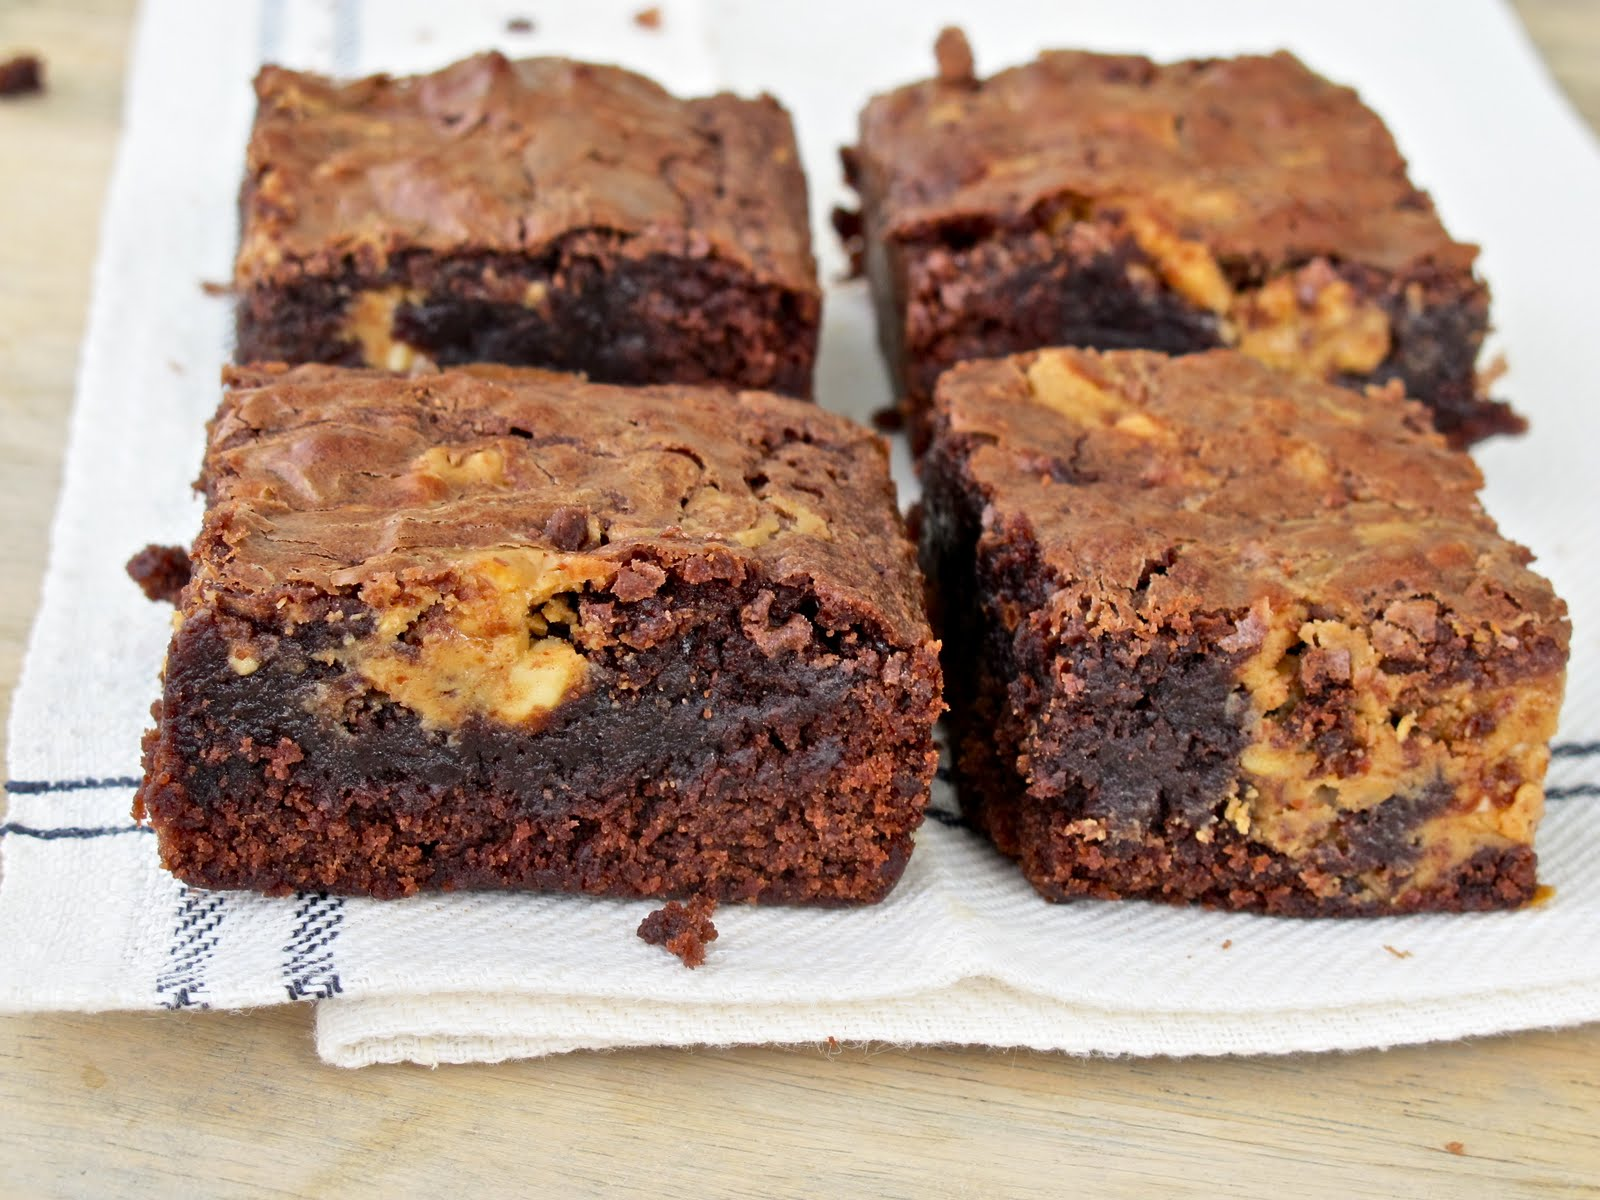 ... Peanut Butter Brownies | Chewy, Chocolate Fudge & Peanut Butter